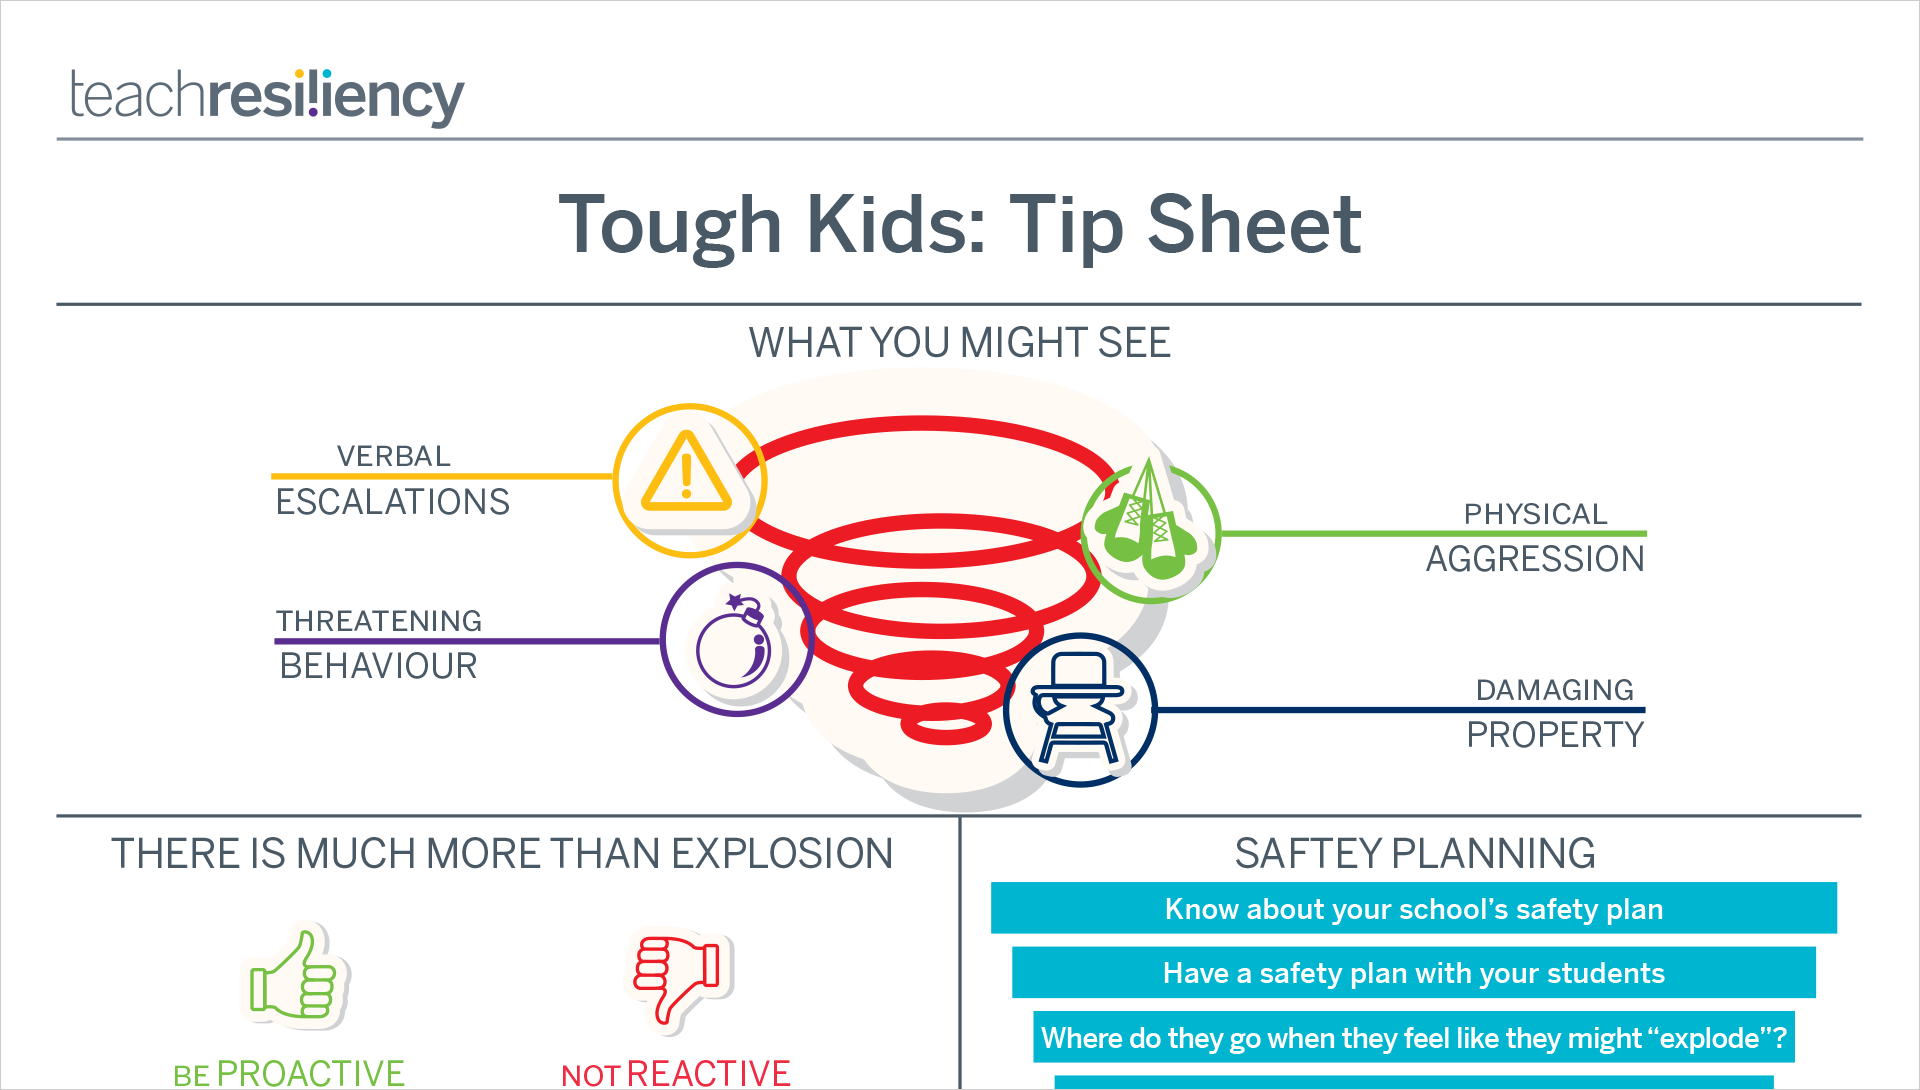 Tough kids tip sheet